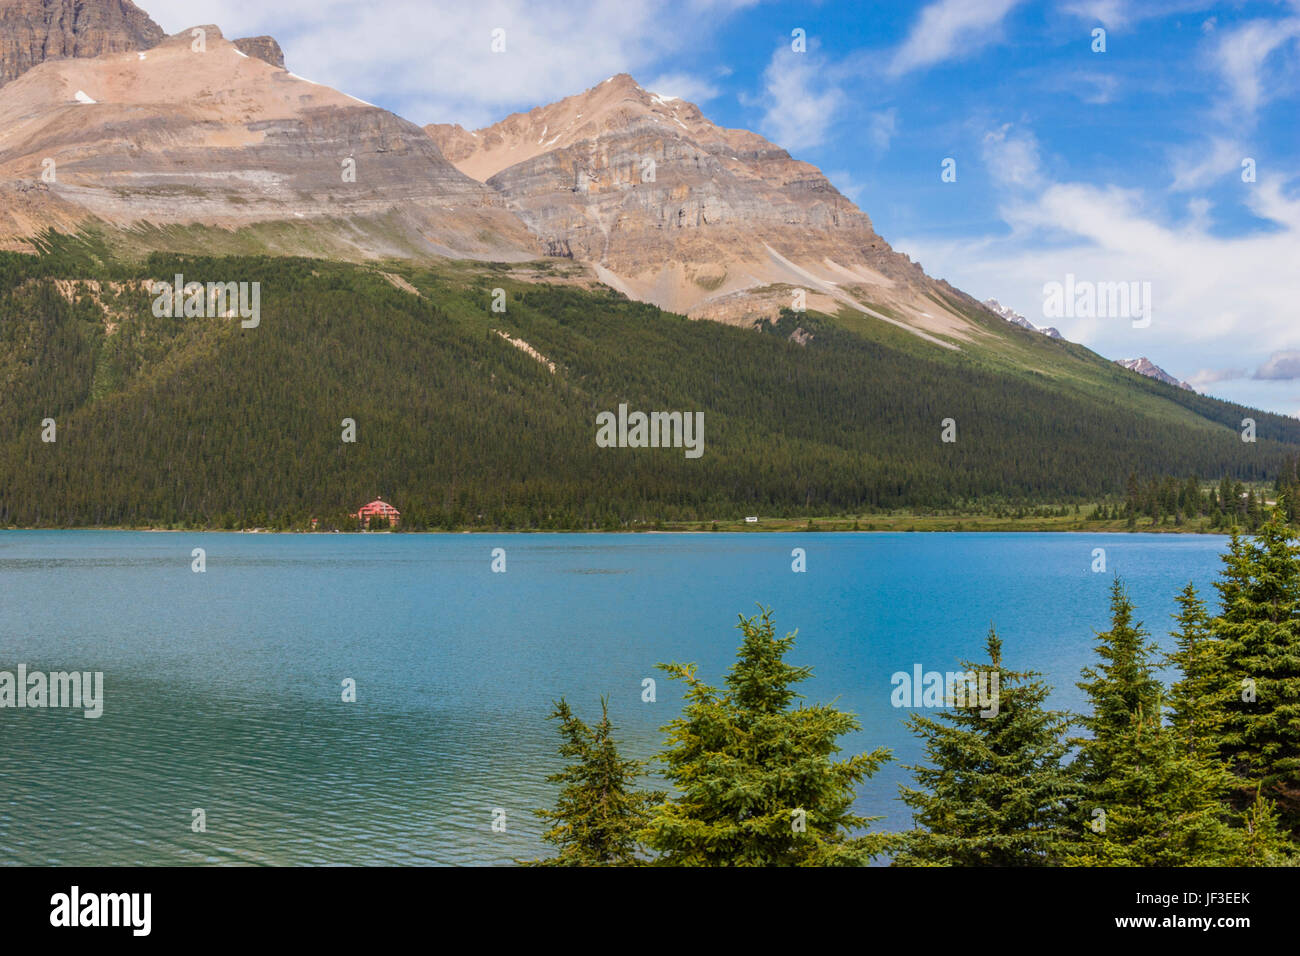 Num-ti-jah Lodge at Bow Lake and Crowfoot Mountain in Banff National Park, Alberta, Canada. - Stock Image